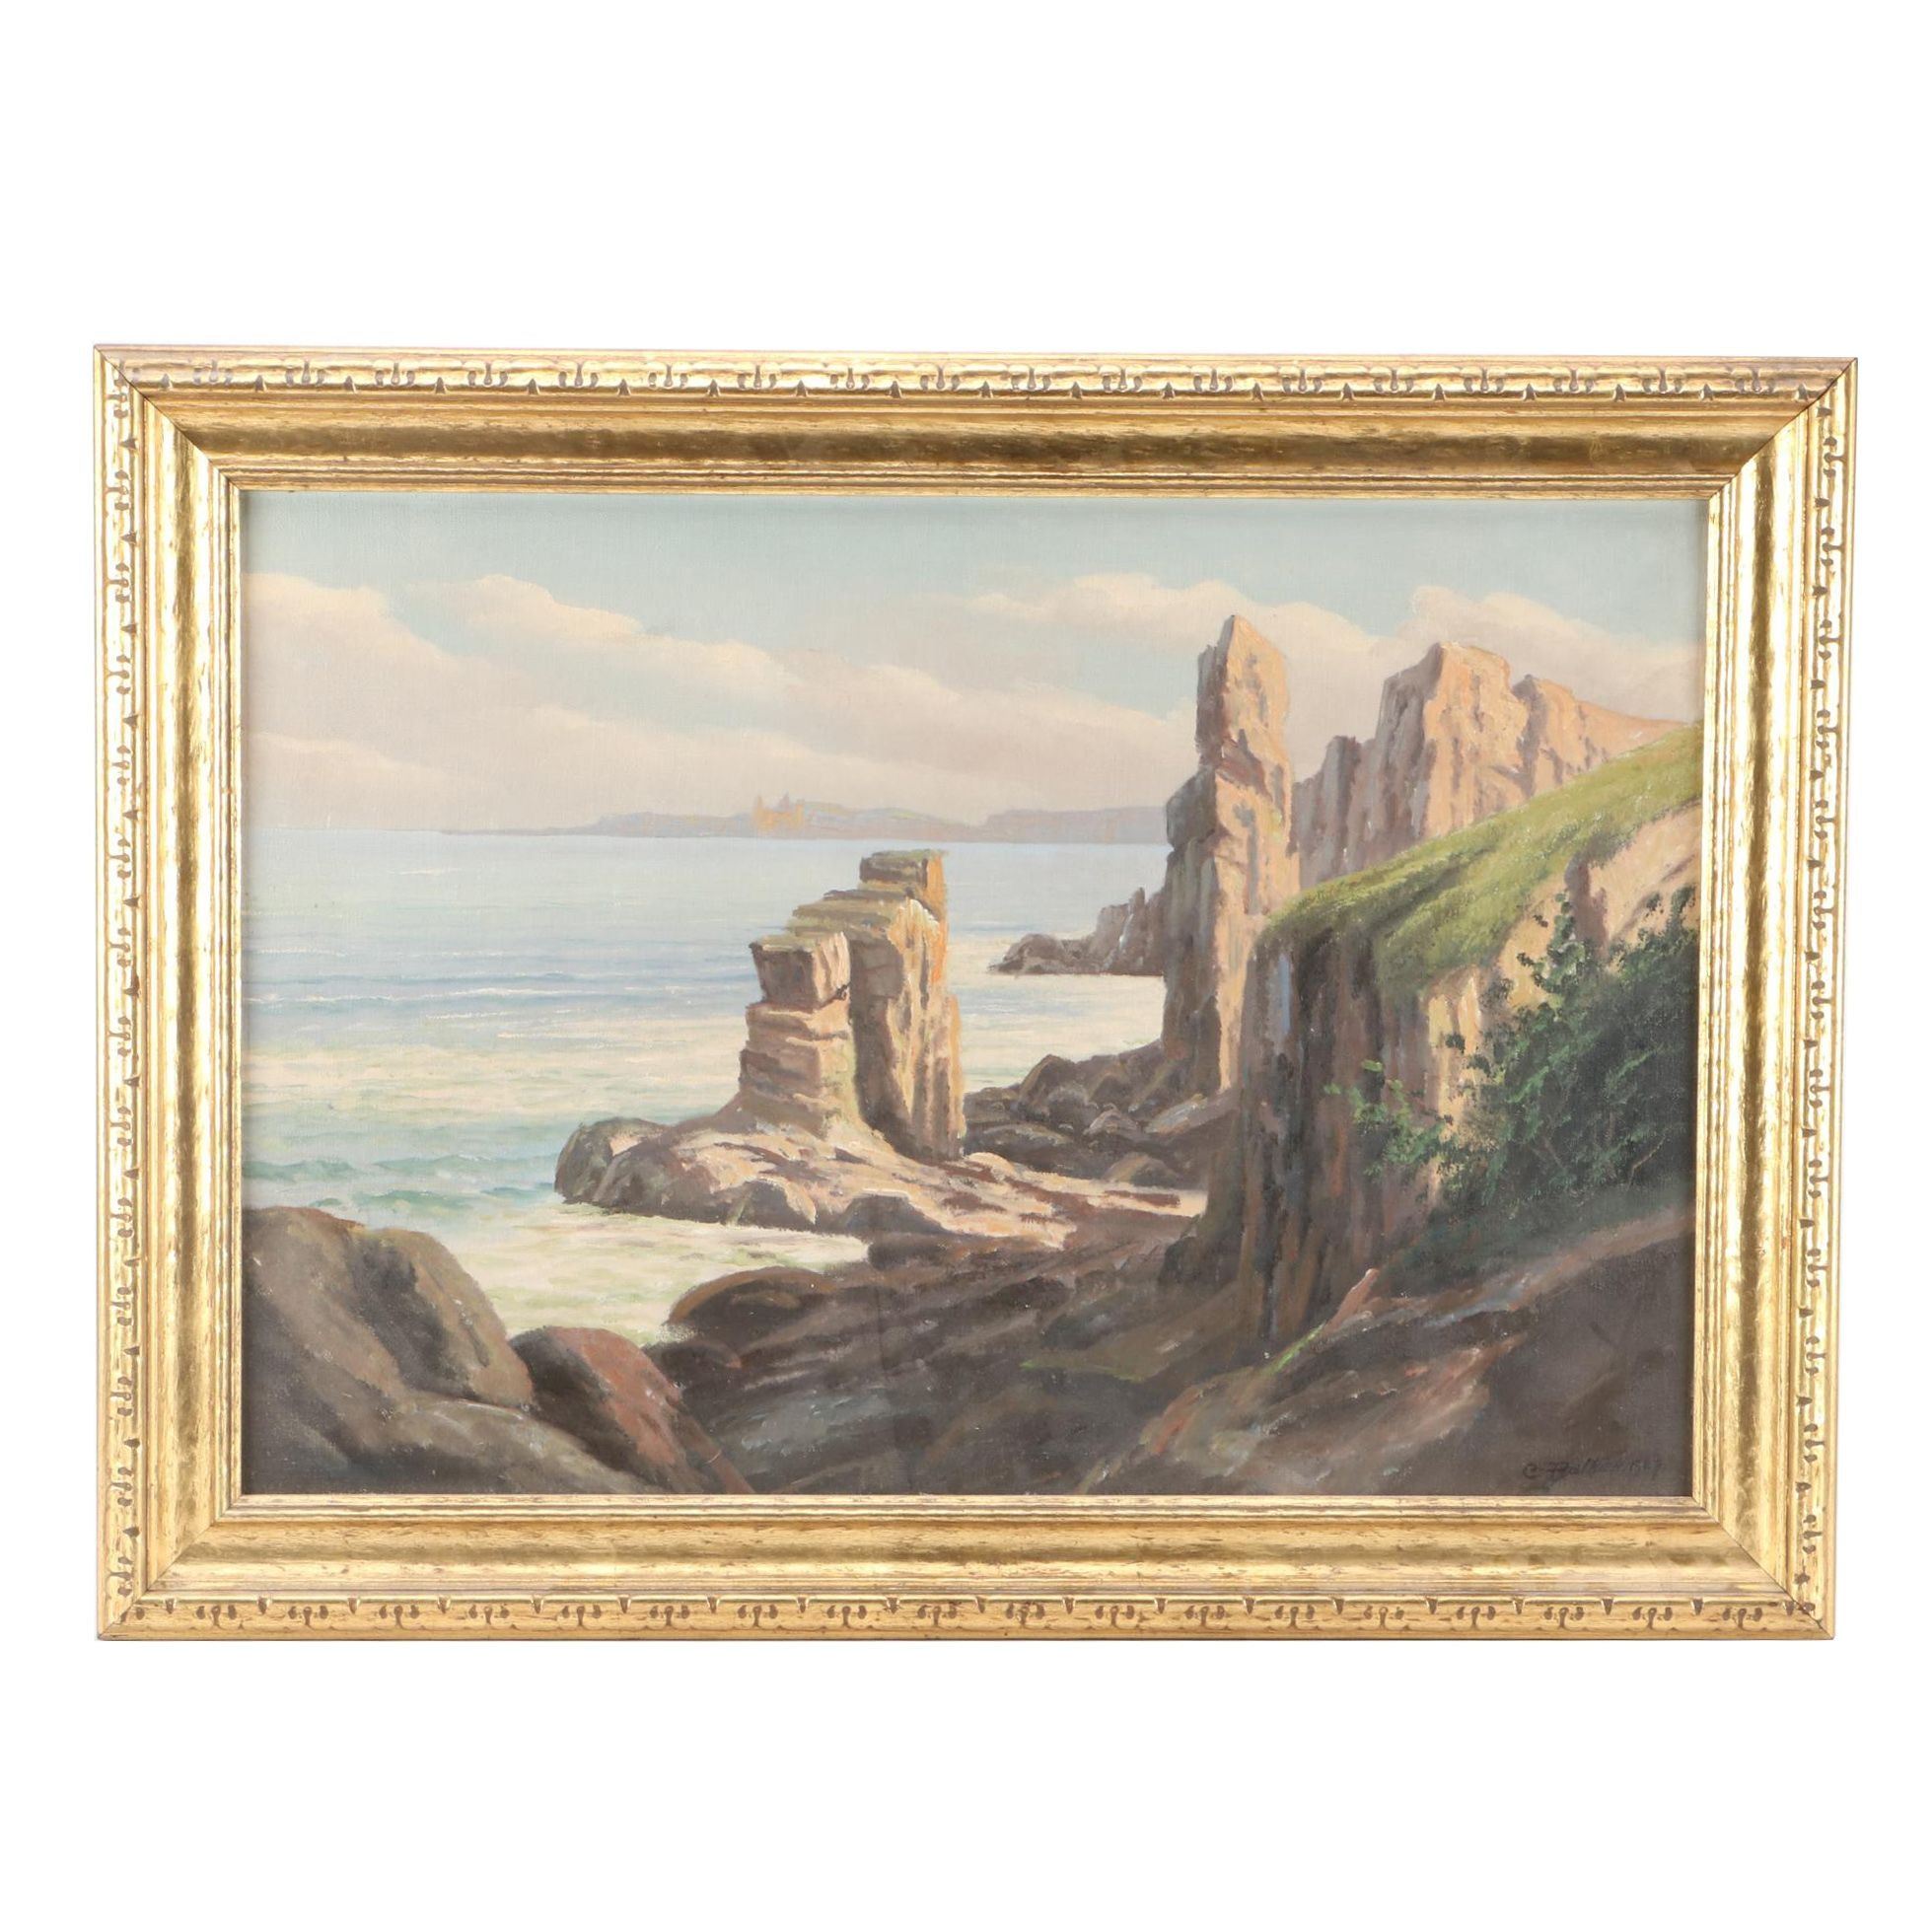 C. Balken Oil Painting of Coastal Landscape